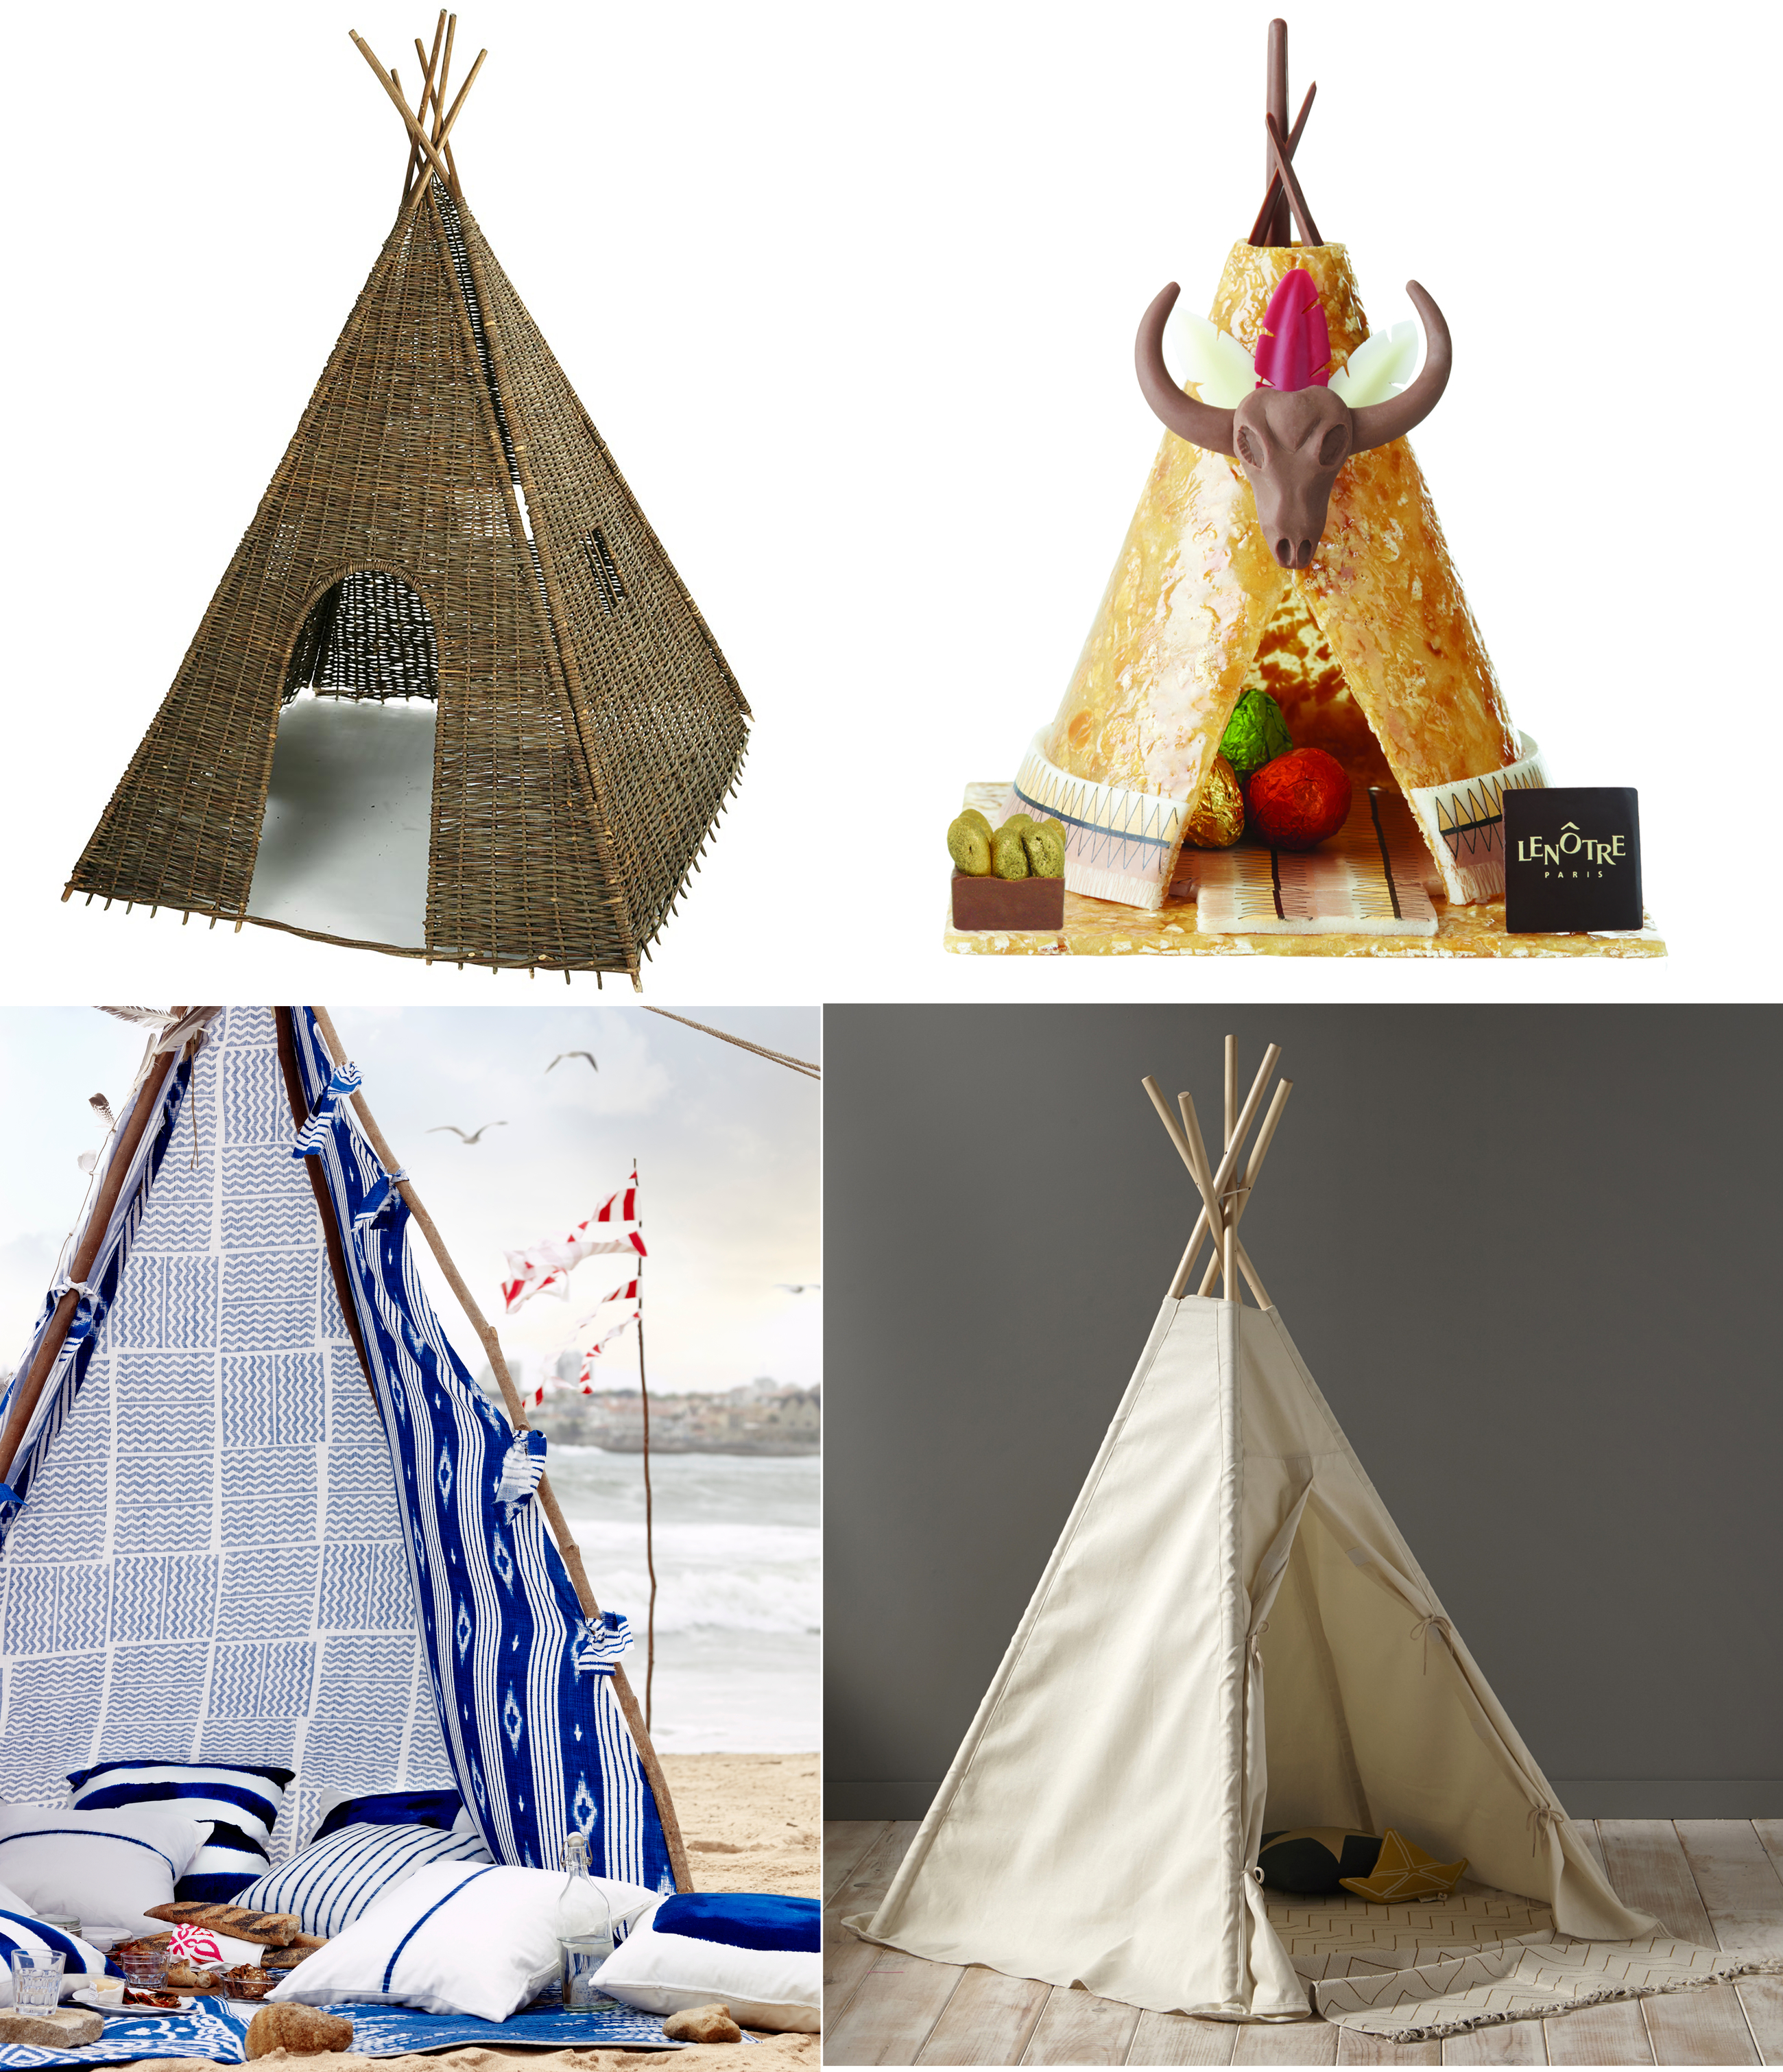 maisons du monde len tre ikea cyrillus maison tipis 359 degr s le blog 359 degr s le blog. Black Bedroom Furniture Sets. Home Design Ideas